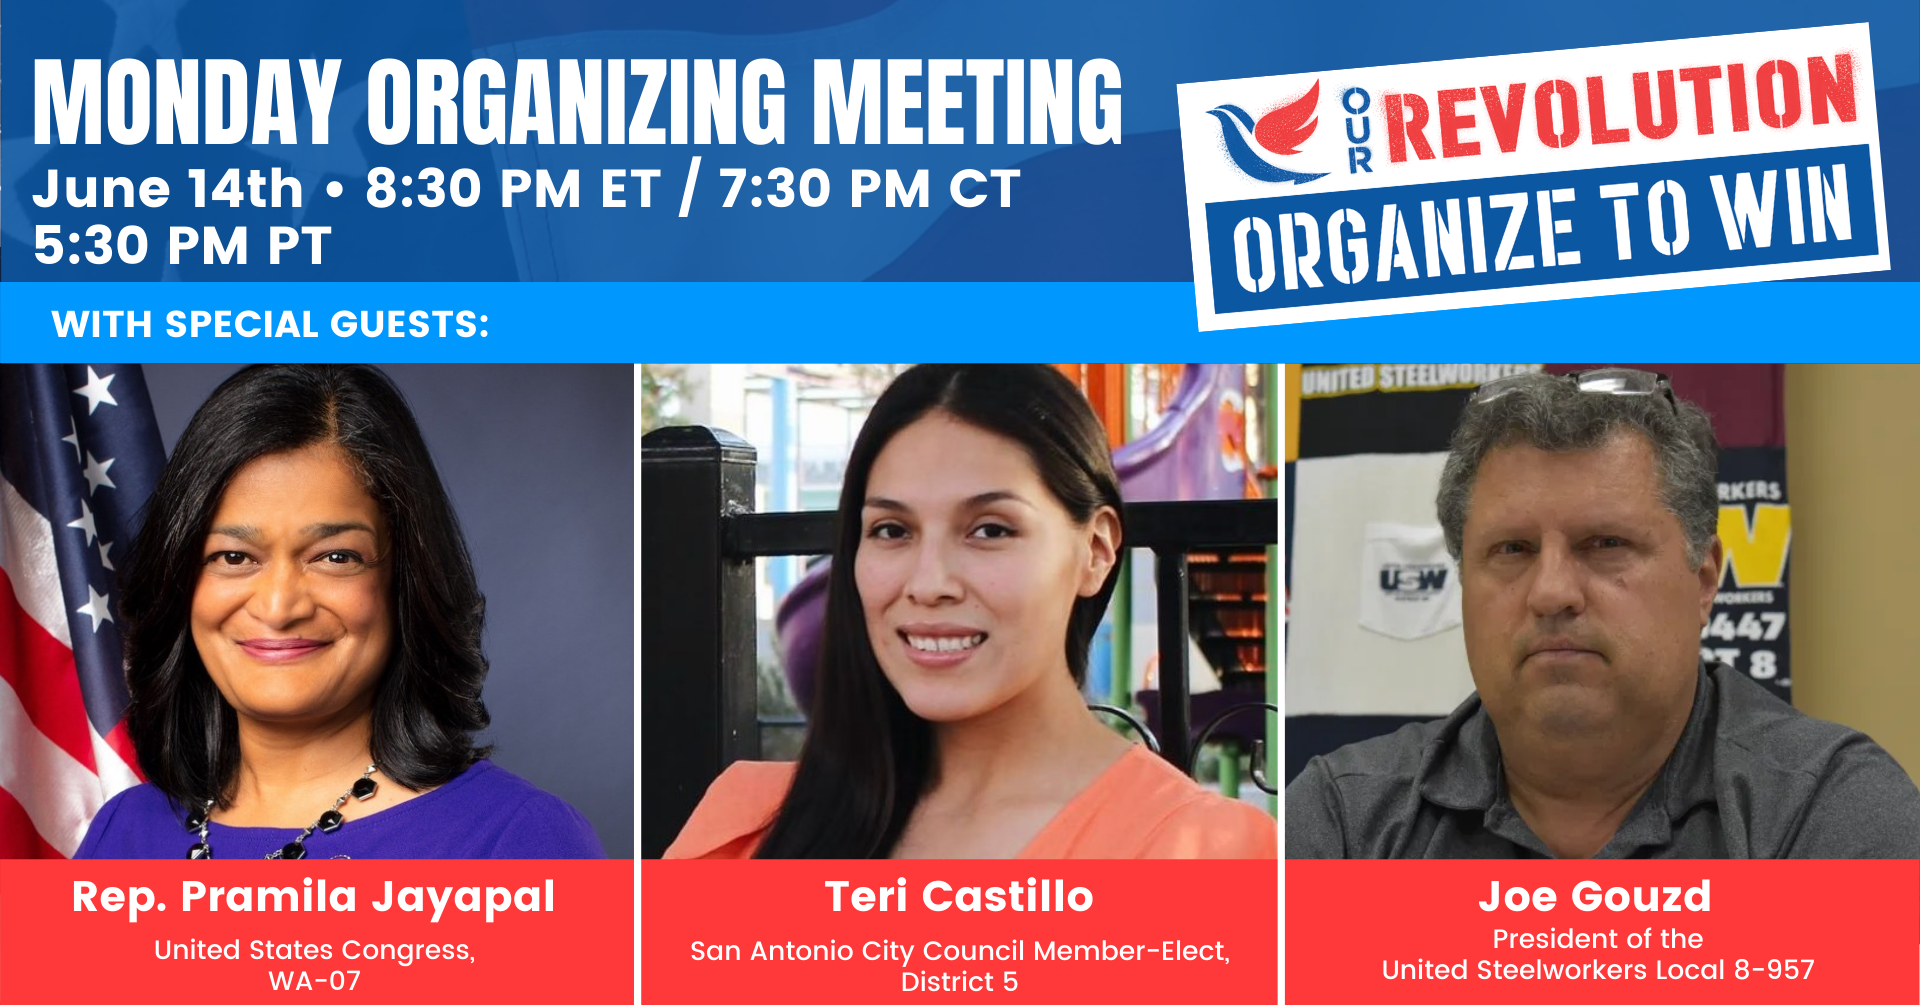 Our Revolution Monday Organizing Meeting @ Online